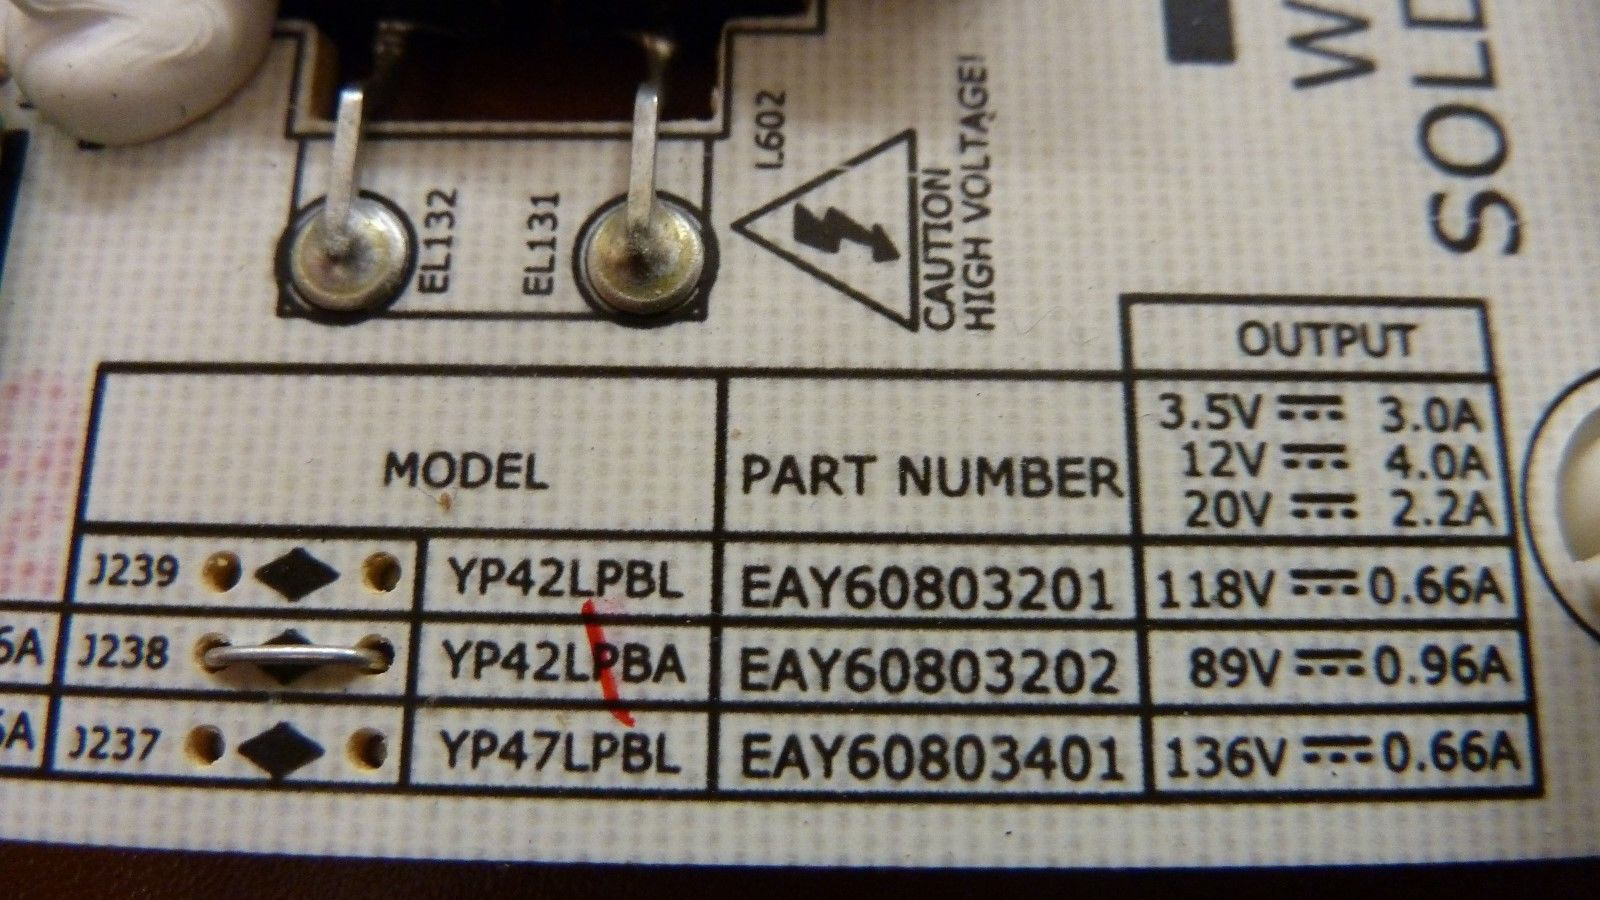 LG EAY60803202 POWER SUPPLY BOARD FOR 42LE5400 AND OTHER MODELS